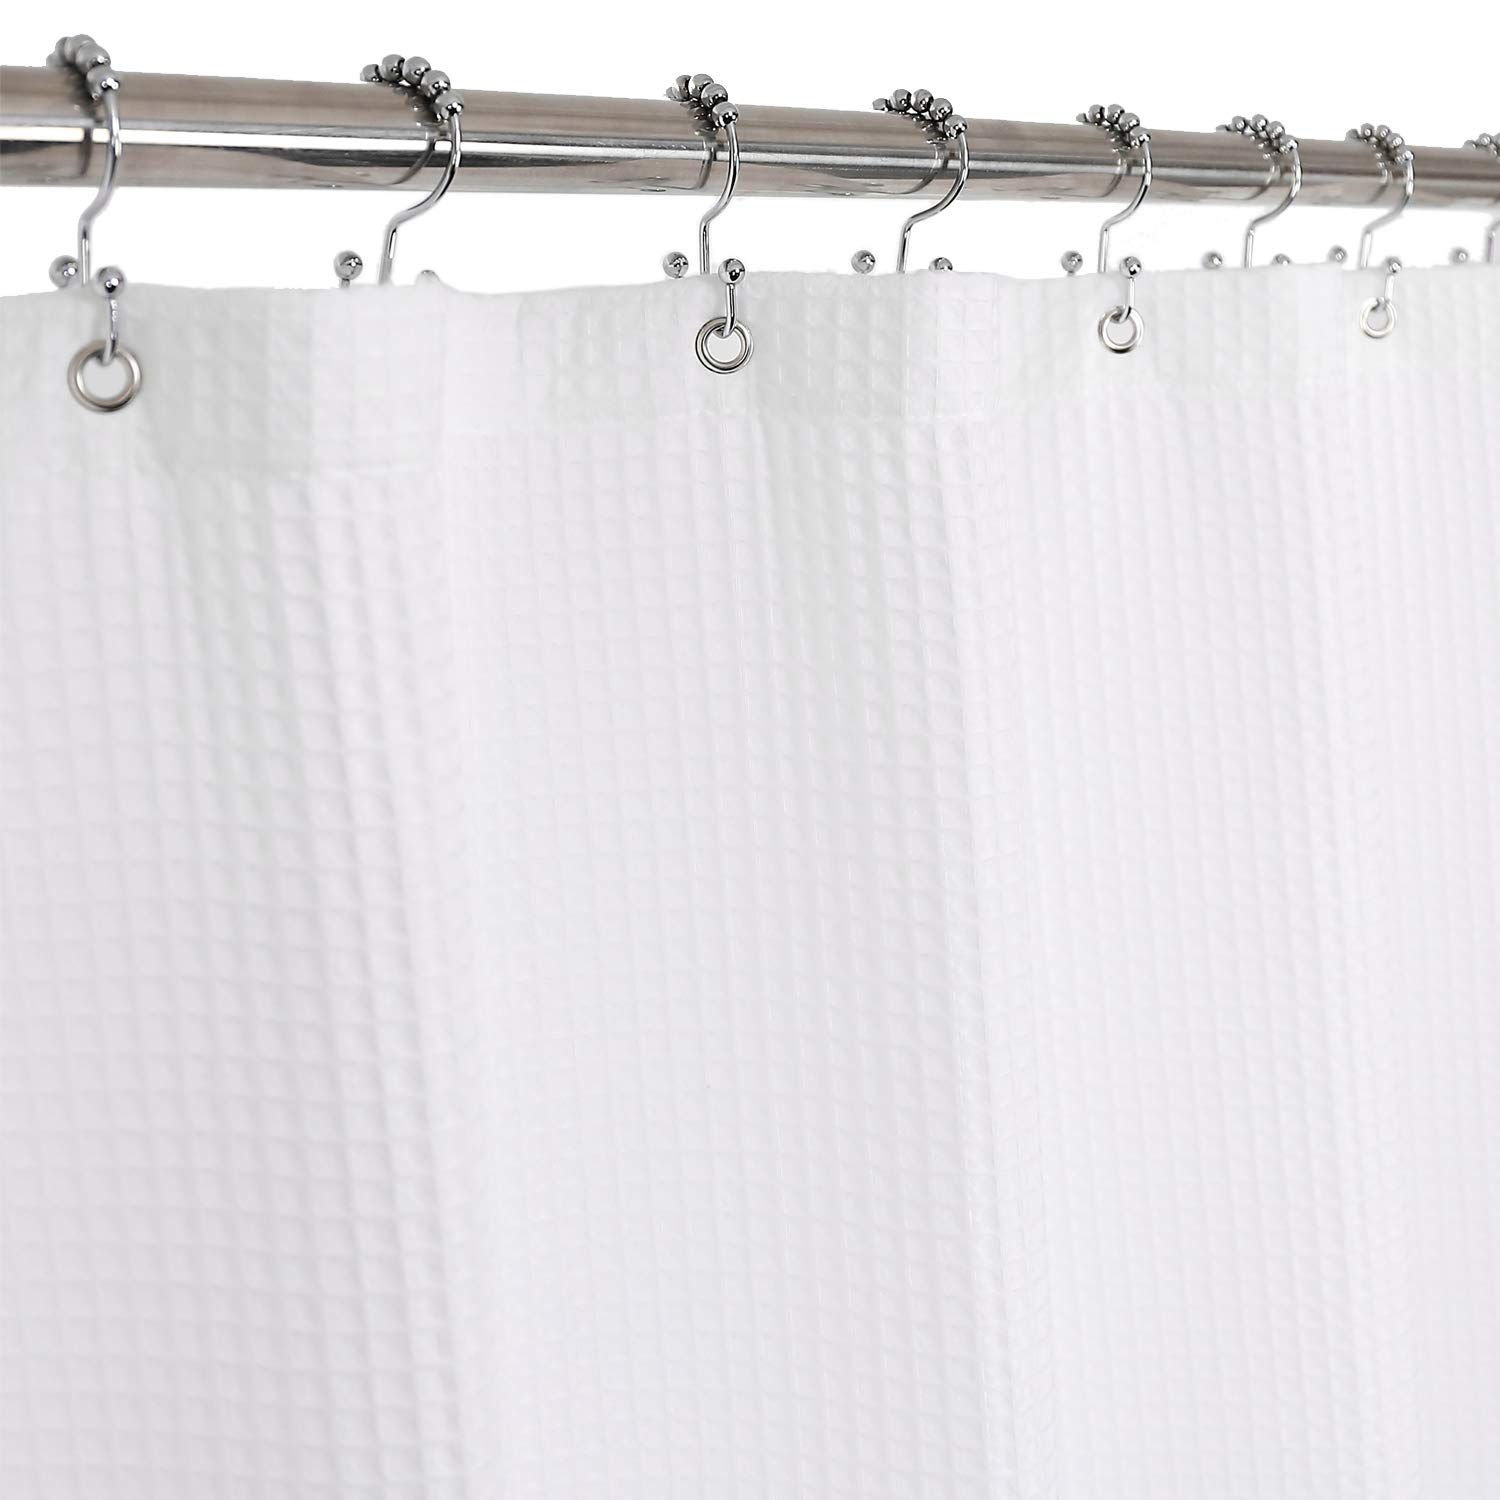 Barossa Design Honeycomb Waffle Weave Shower Curtain Cotton Blend